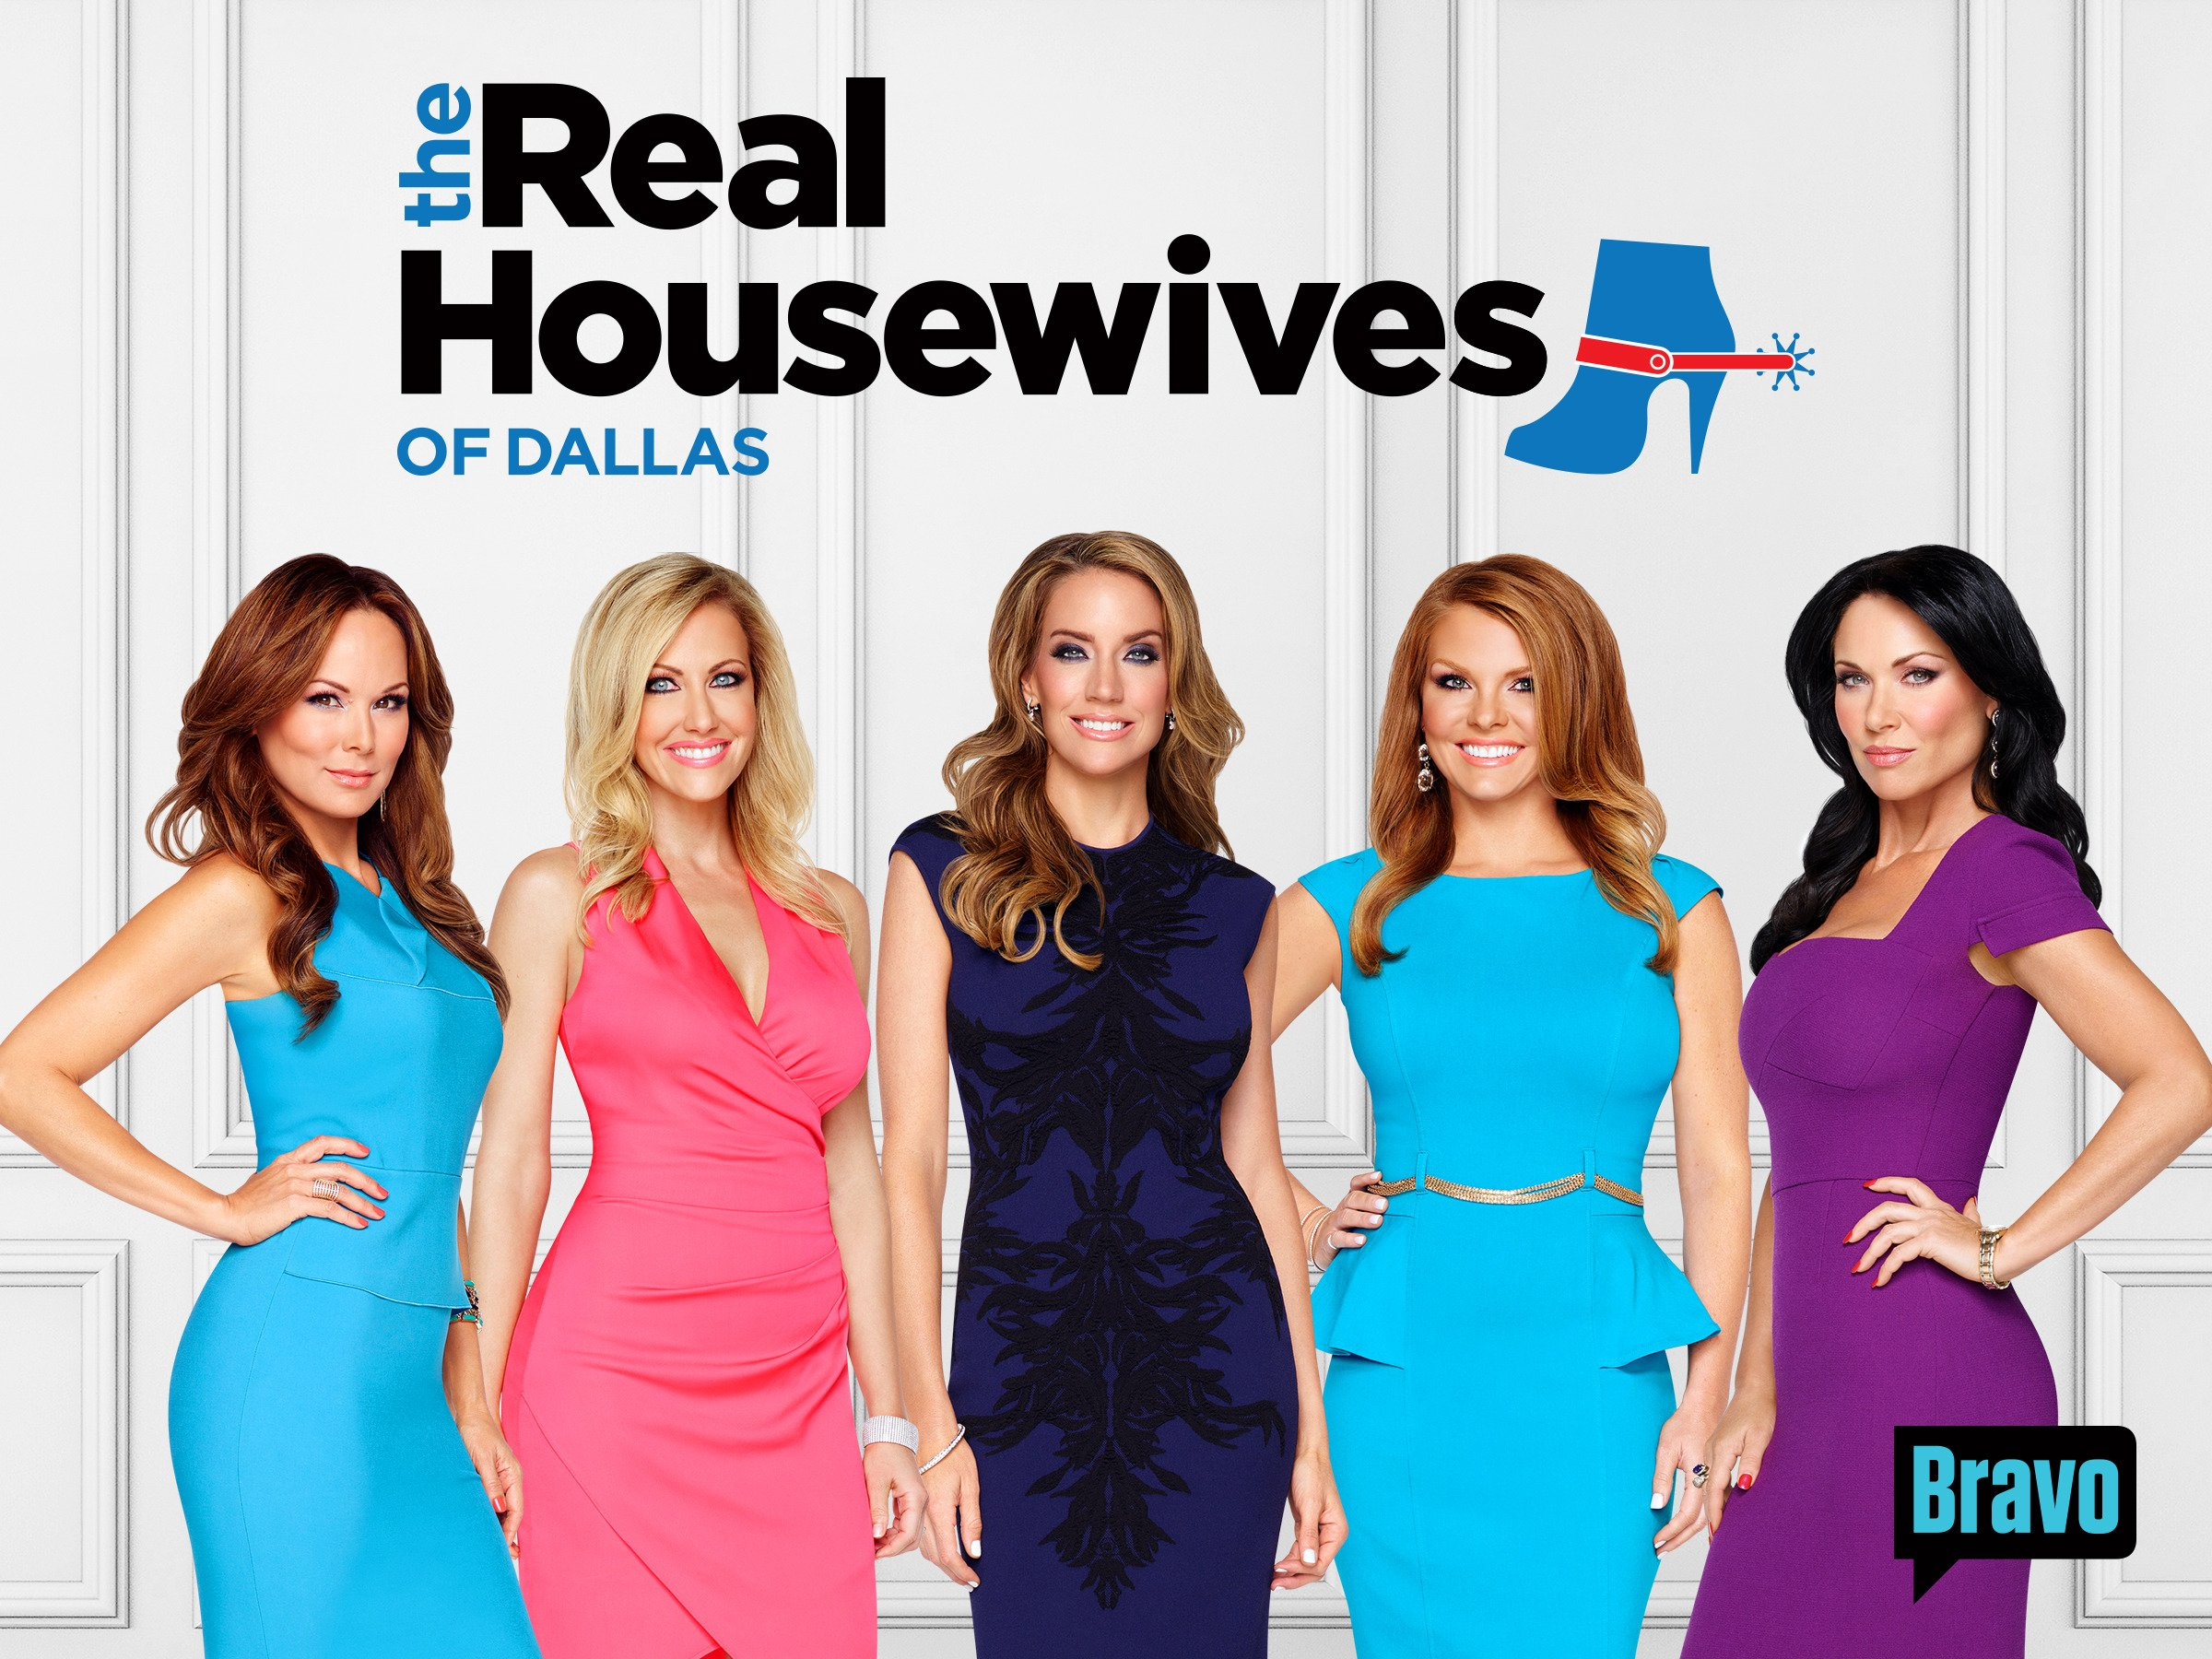 The Real Housewives of Dallas Season 5: update